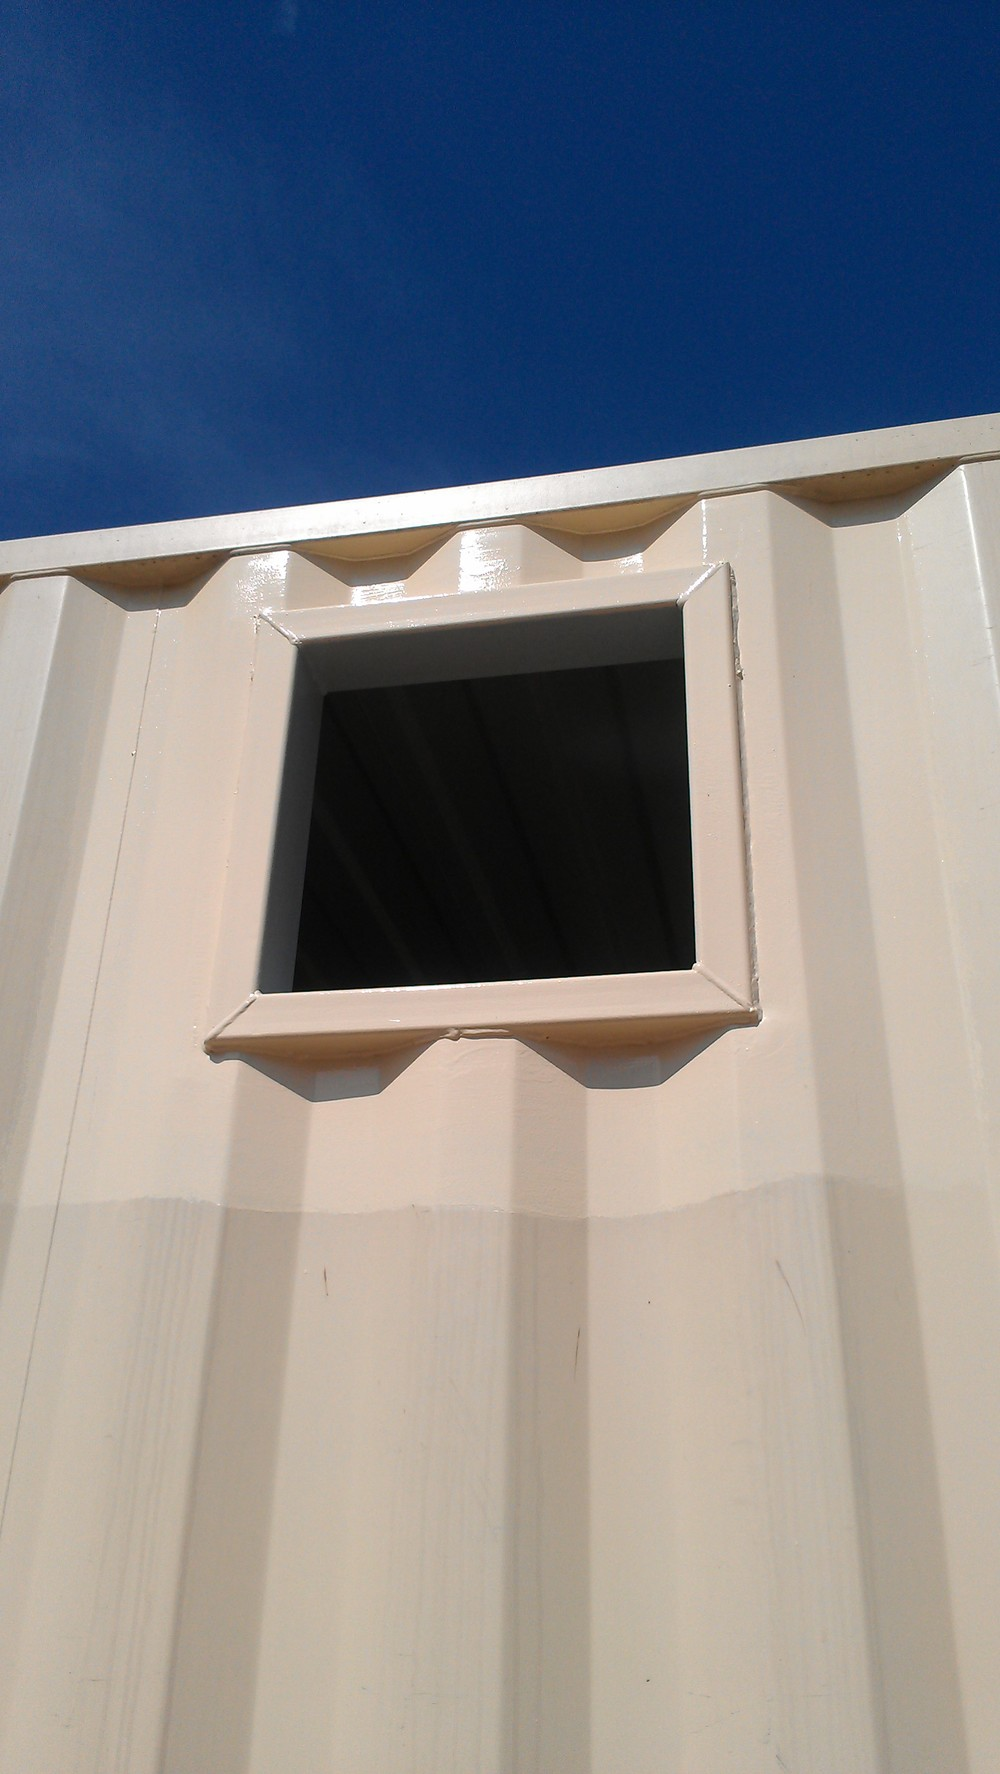 Cut and framed hole in container from outside